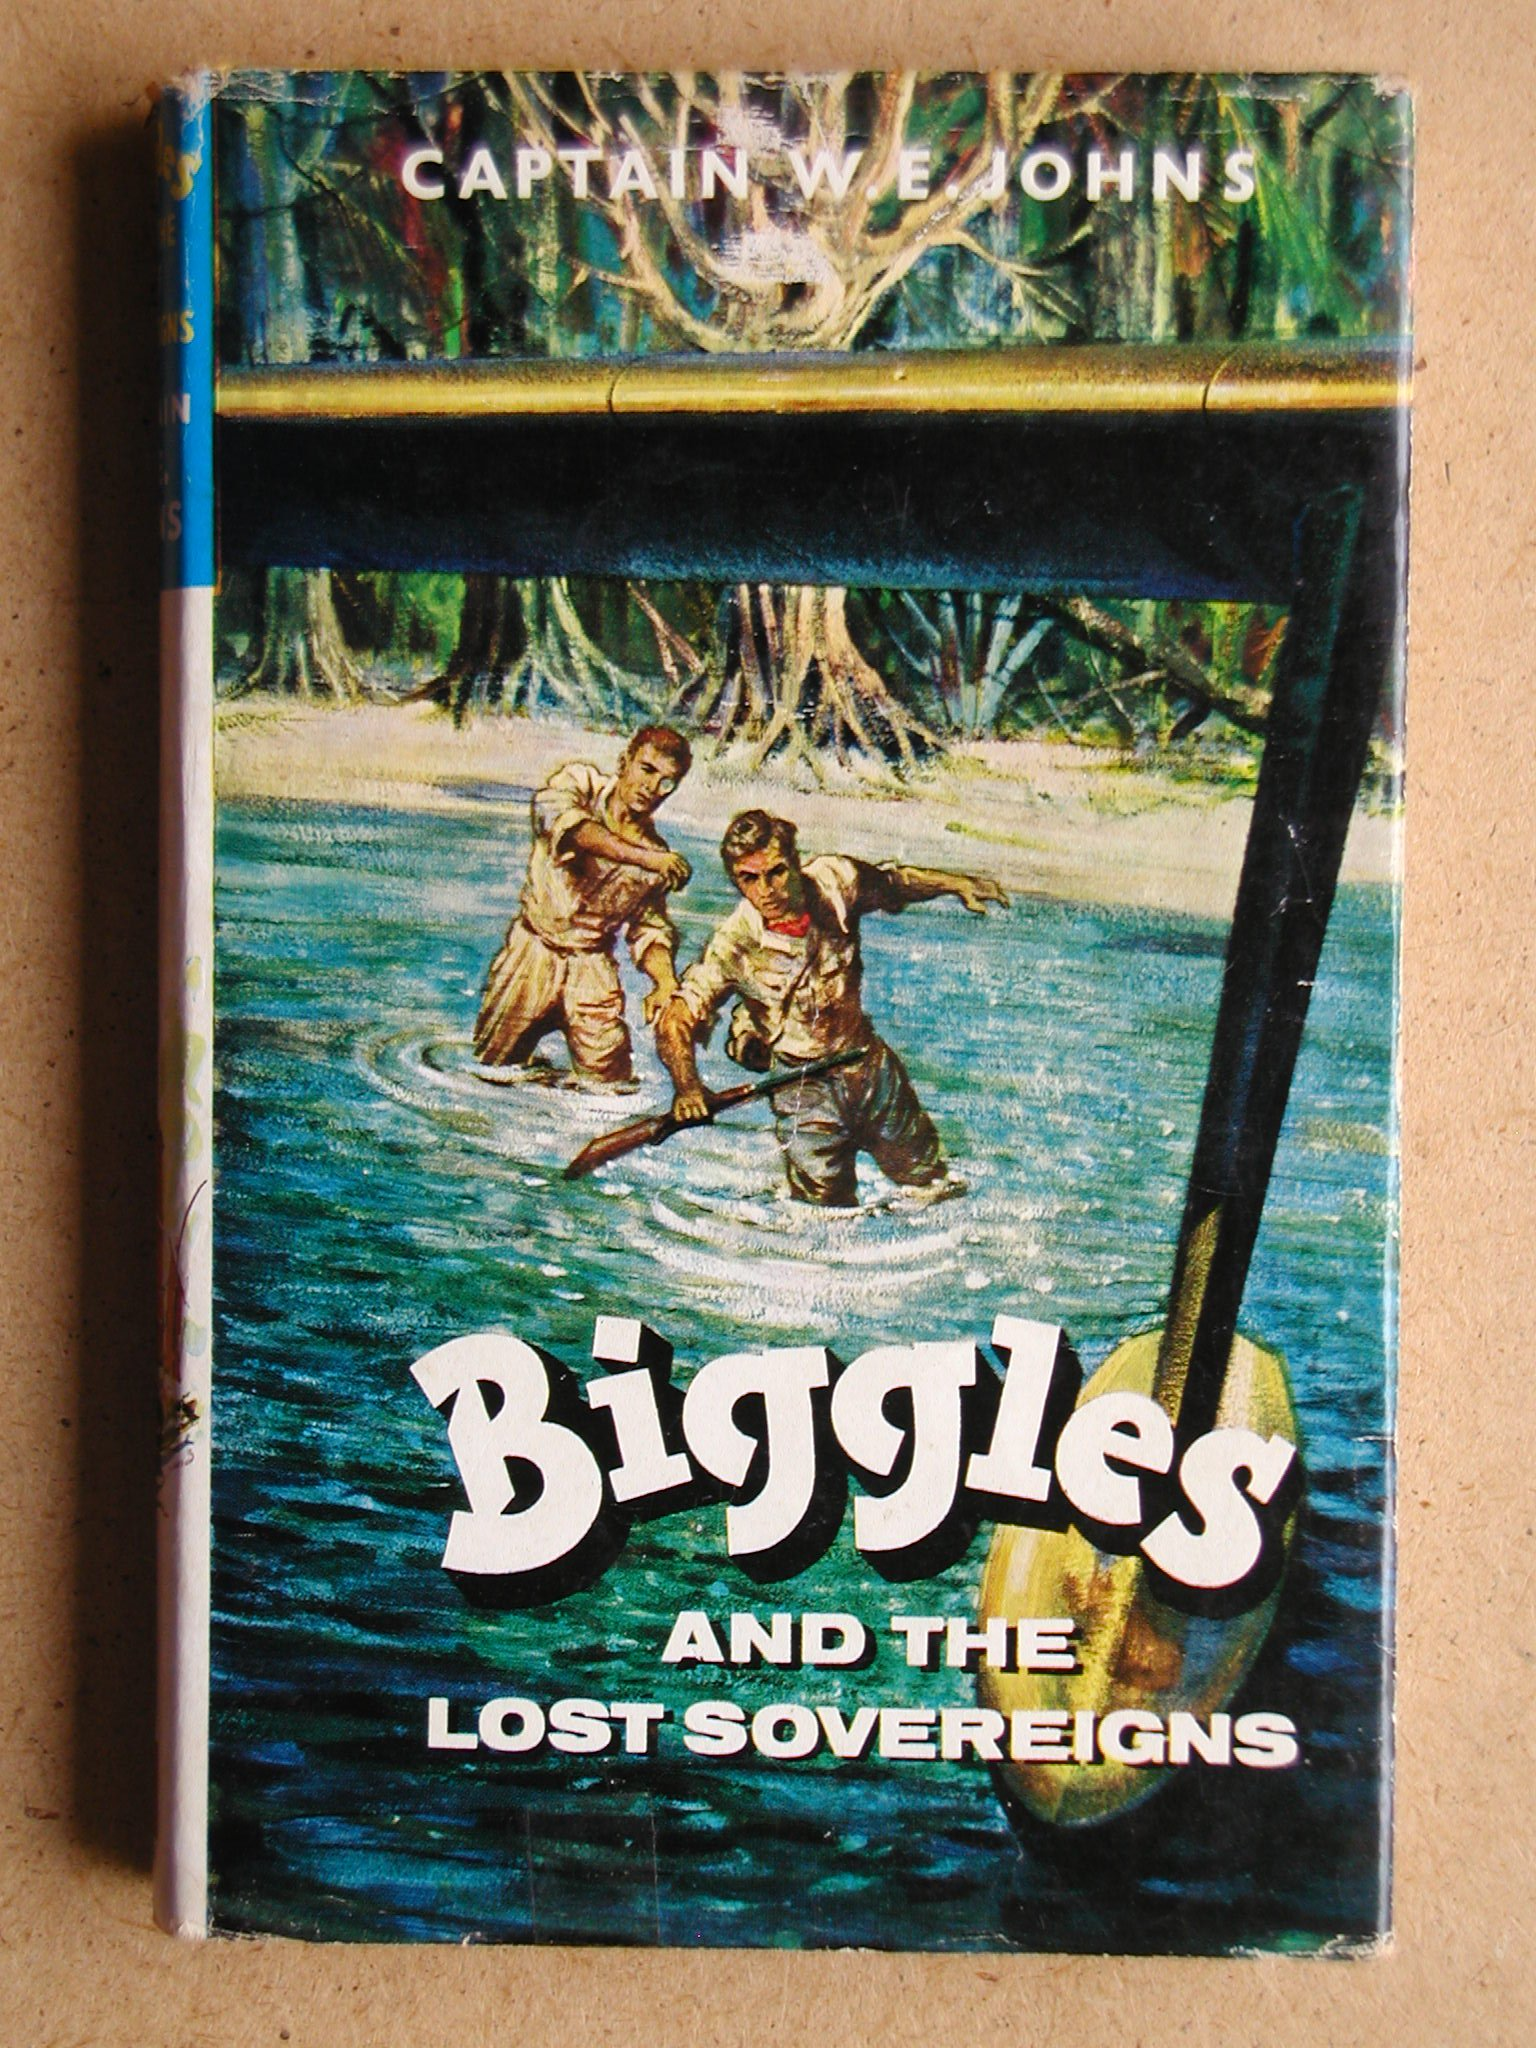 Biggles and the Lost Sovereigns: Amazon.co.uk: W. E Johns, Leslie Stead:  Books